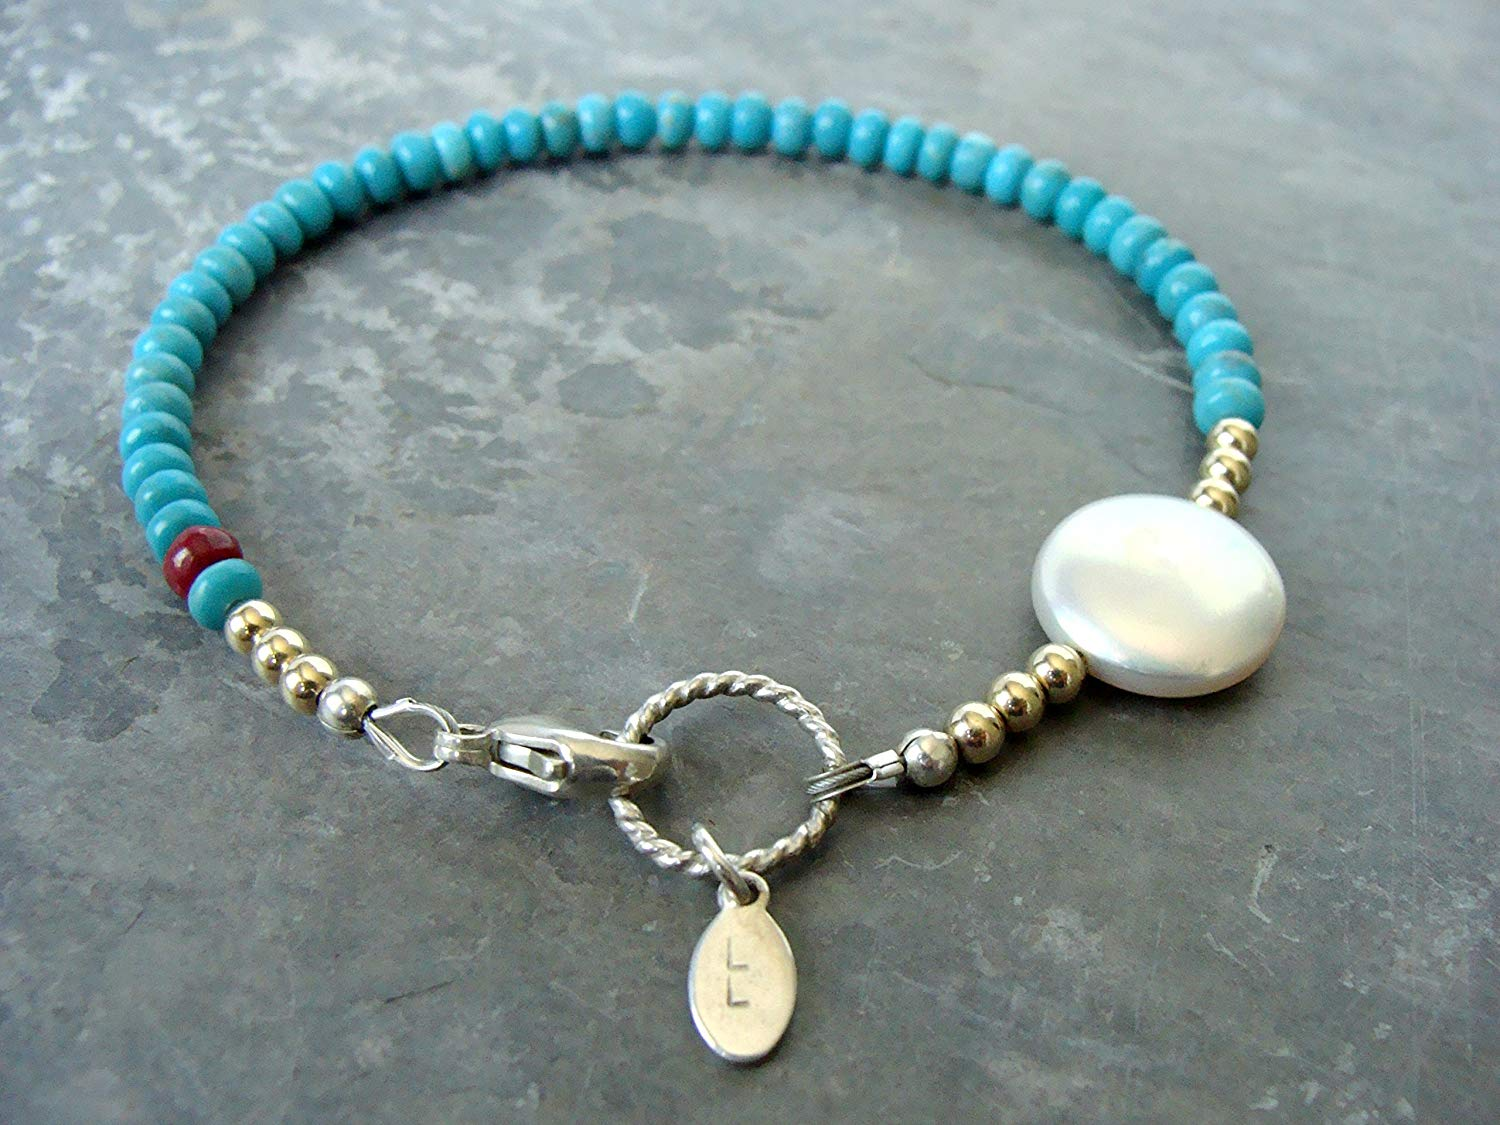 Turquoise bracelet with white coin pearl, ruby, sterling silver and 14kt gold-fill, asymmetrical design, handmade by Let Loose Jewelry, something a little different